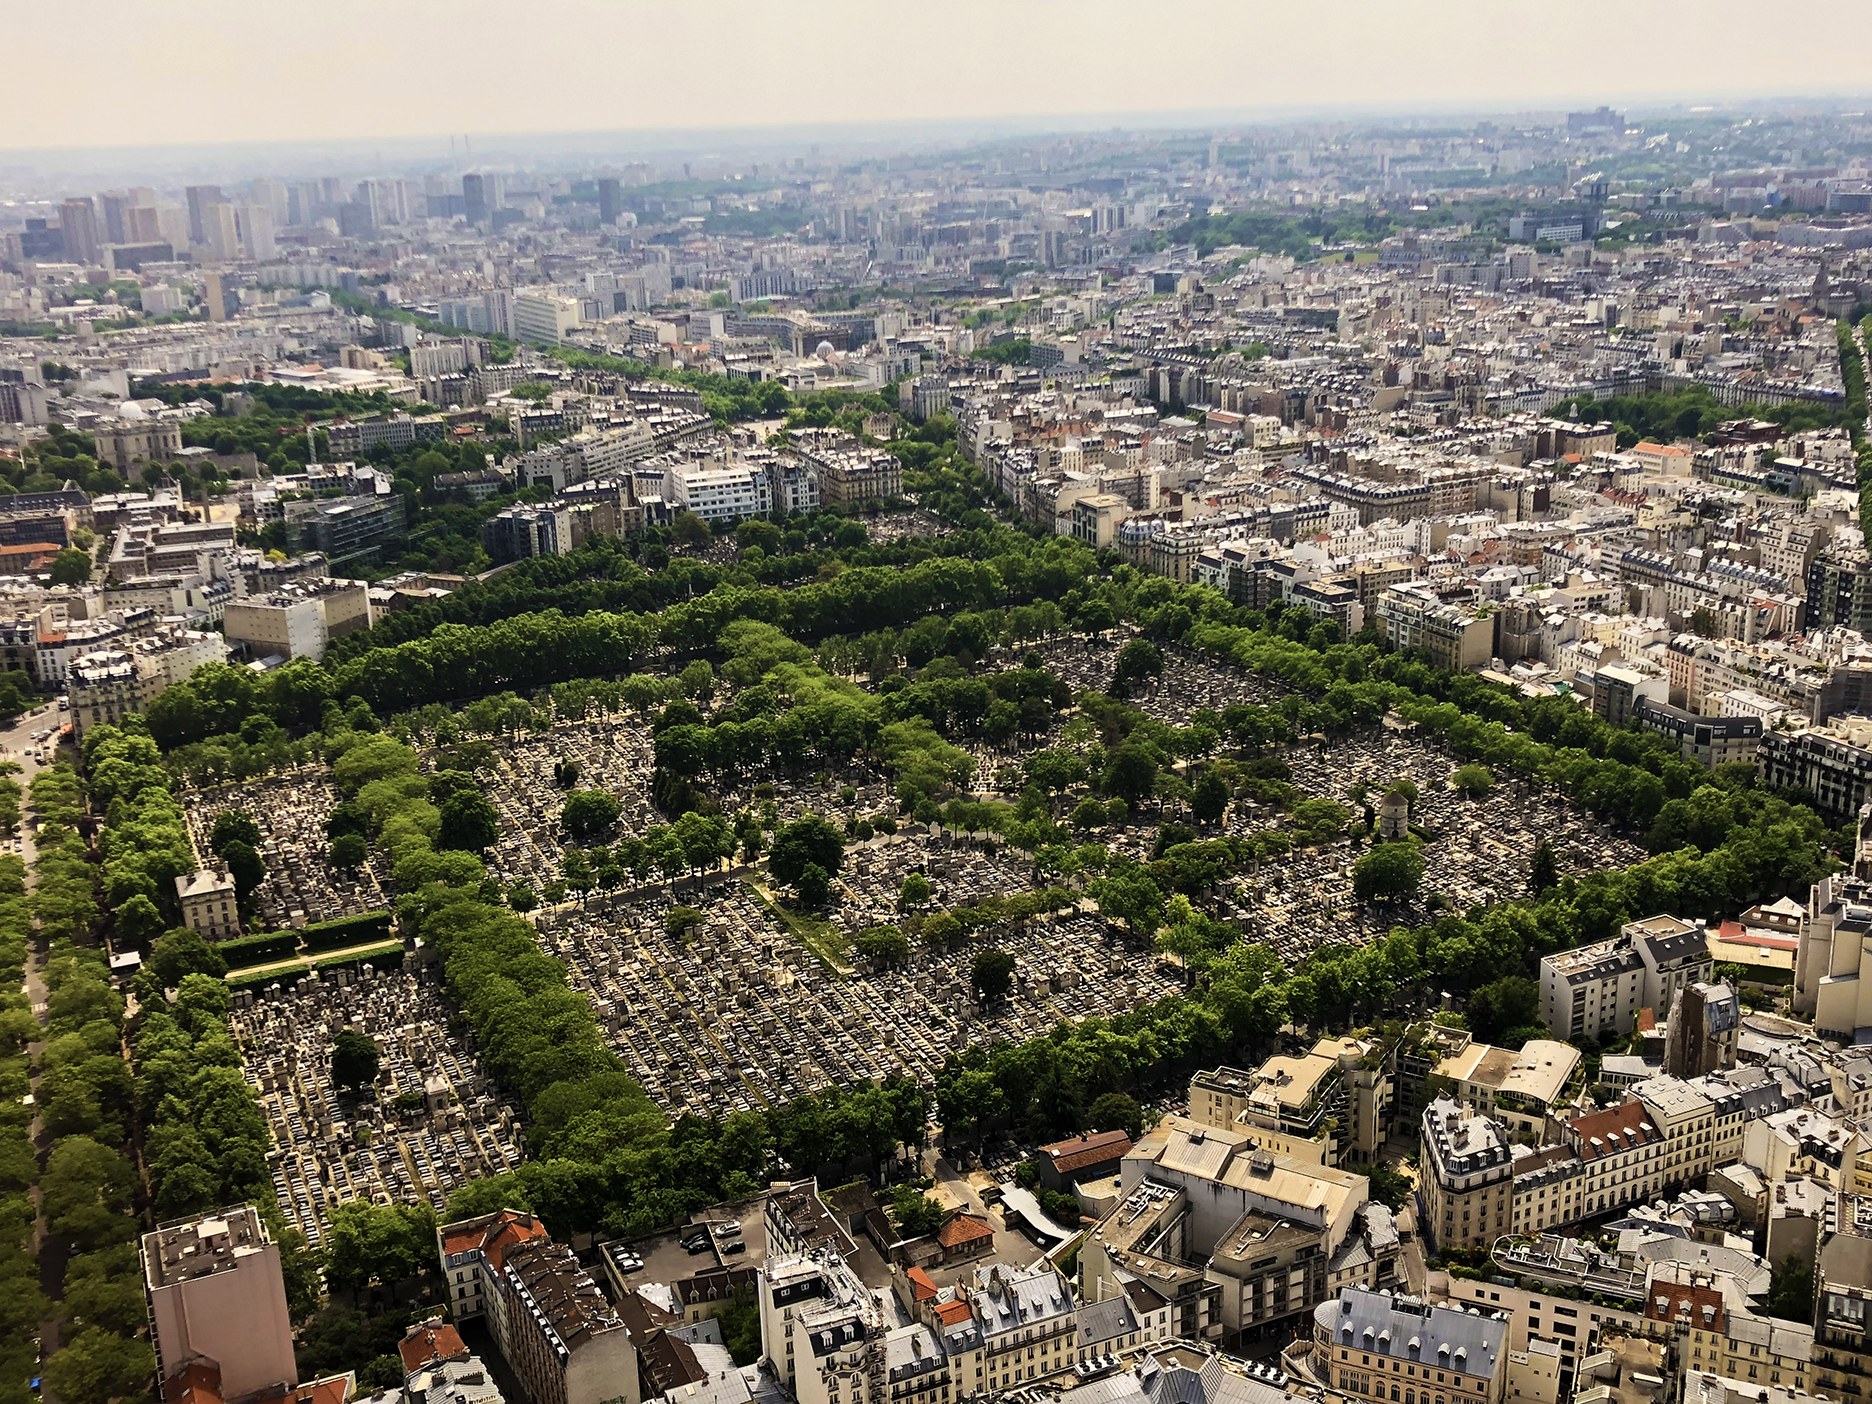 Montparnasse cemetery with its windmill to the right